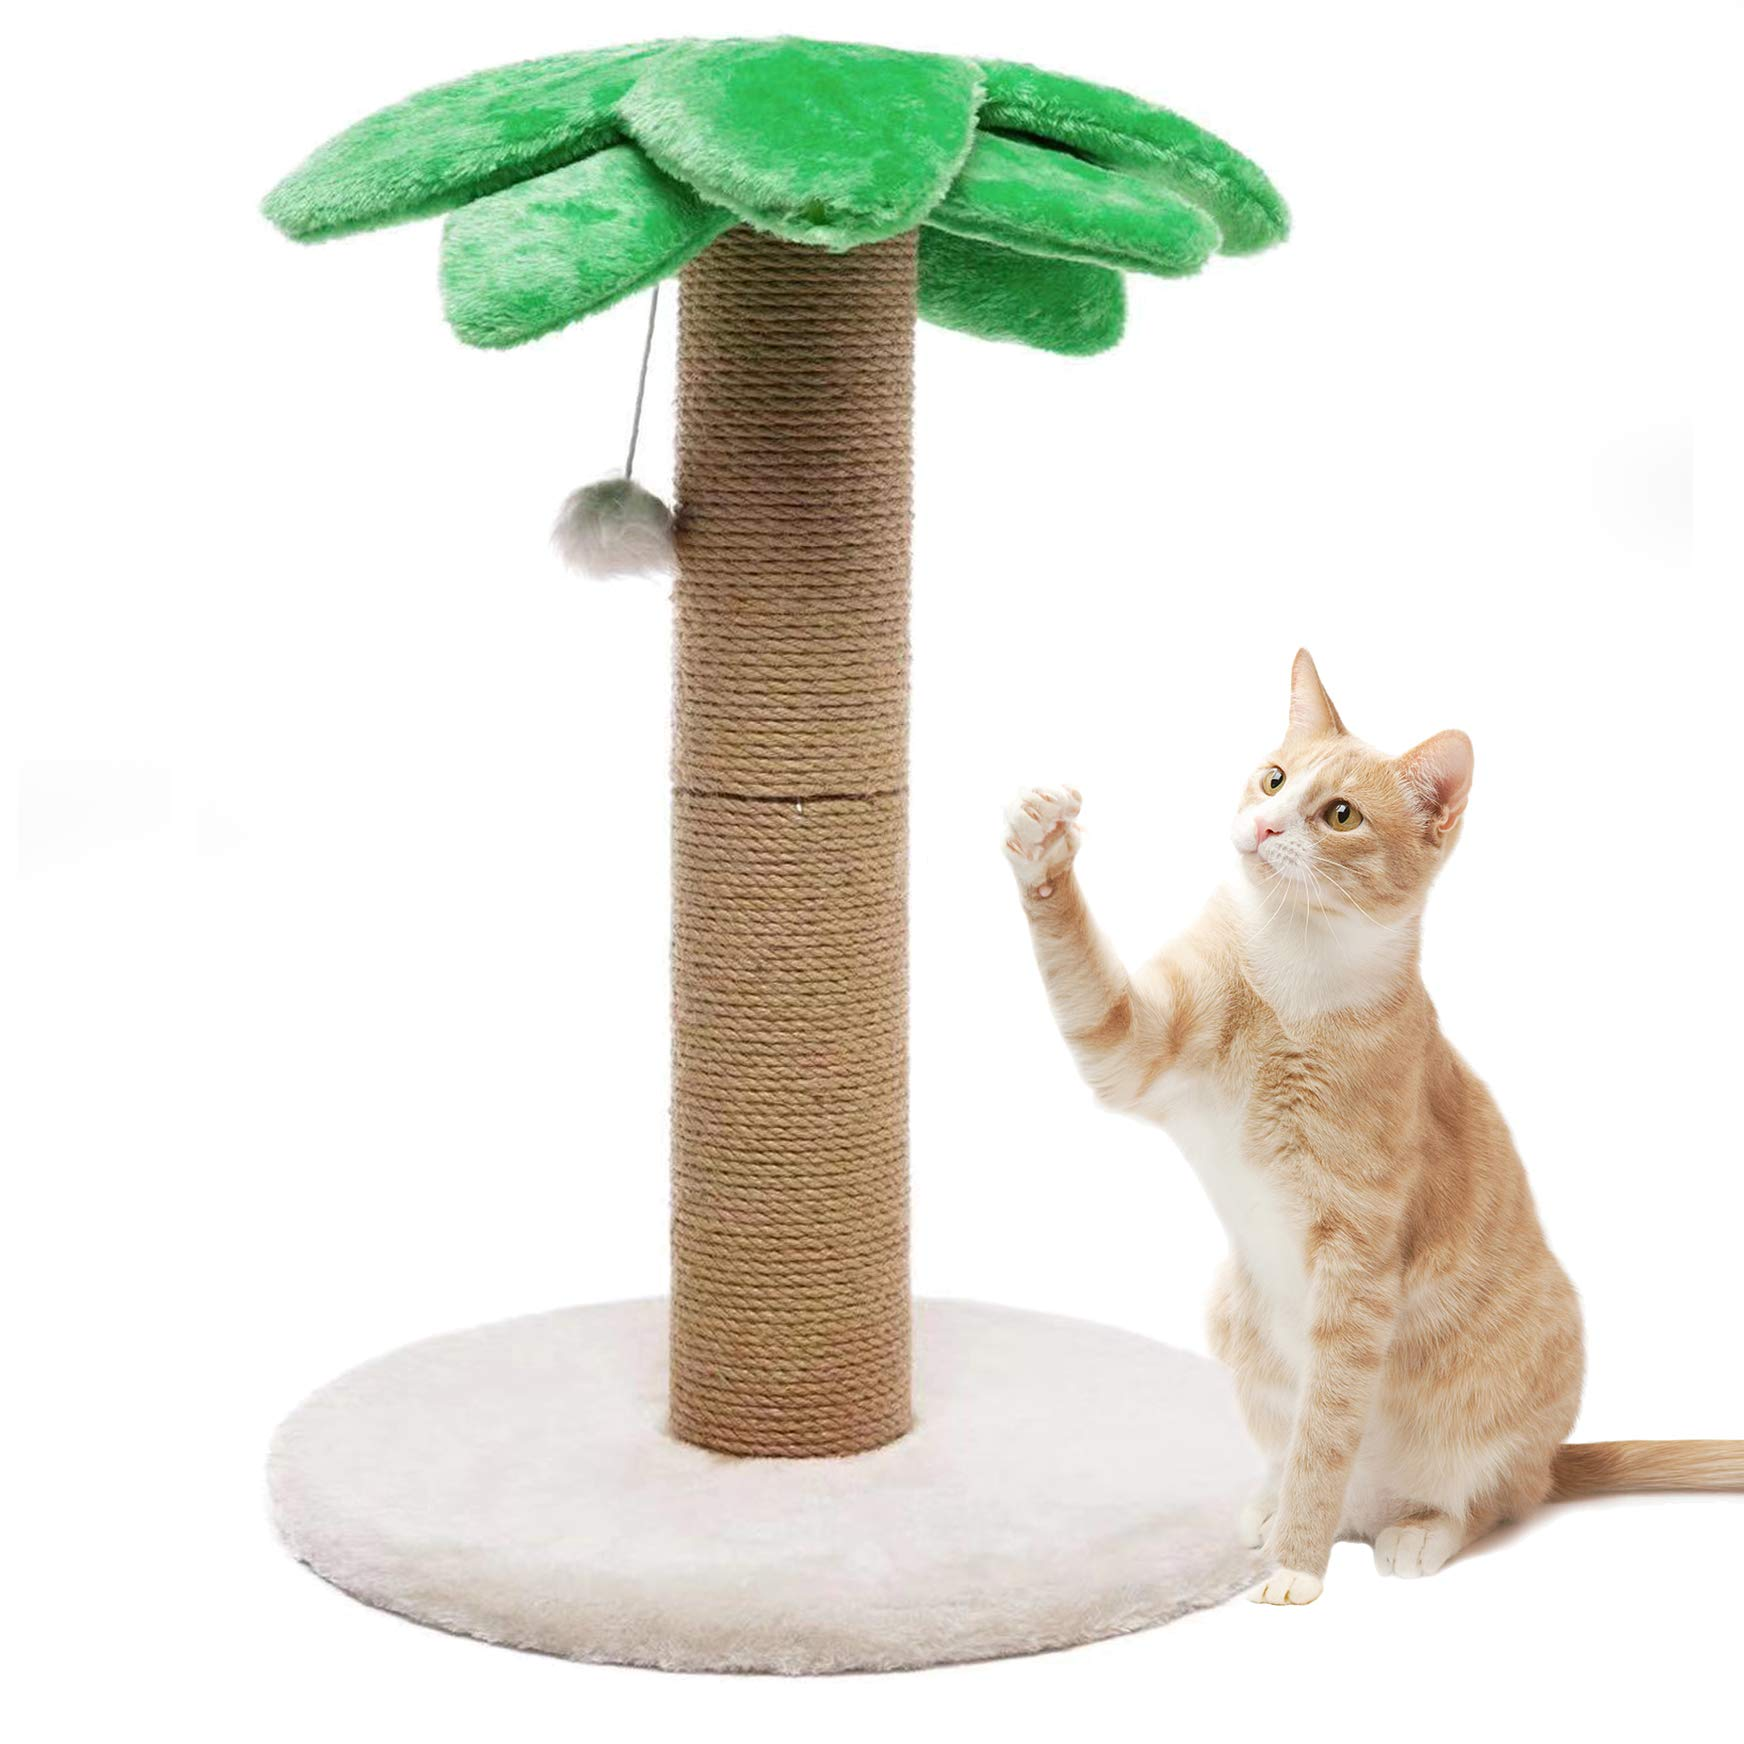 Small Medium Cat Scratching Post Kitty Coconut Tree-Cat Scratch Post for Cats and Kittens - Plush and Sisal Scratch Pole Cat Scratcher 23in by Luckitty